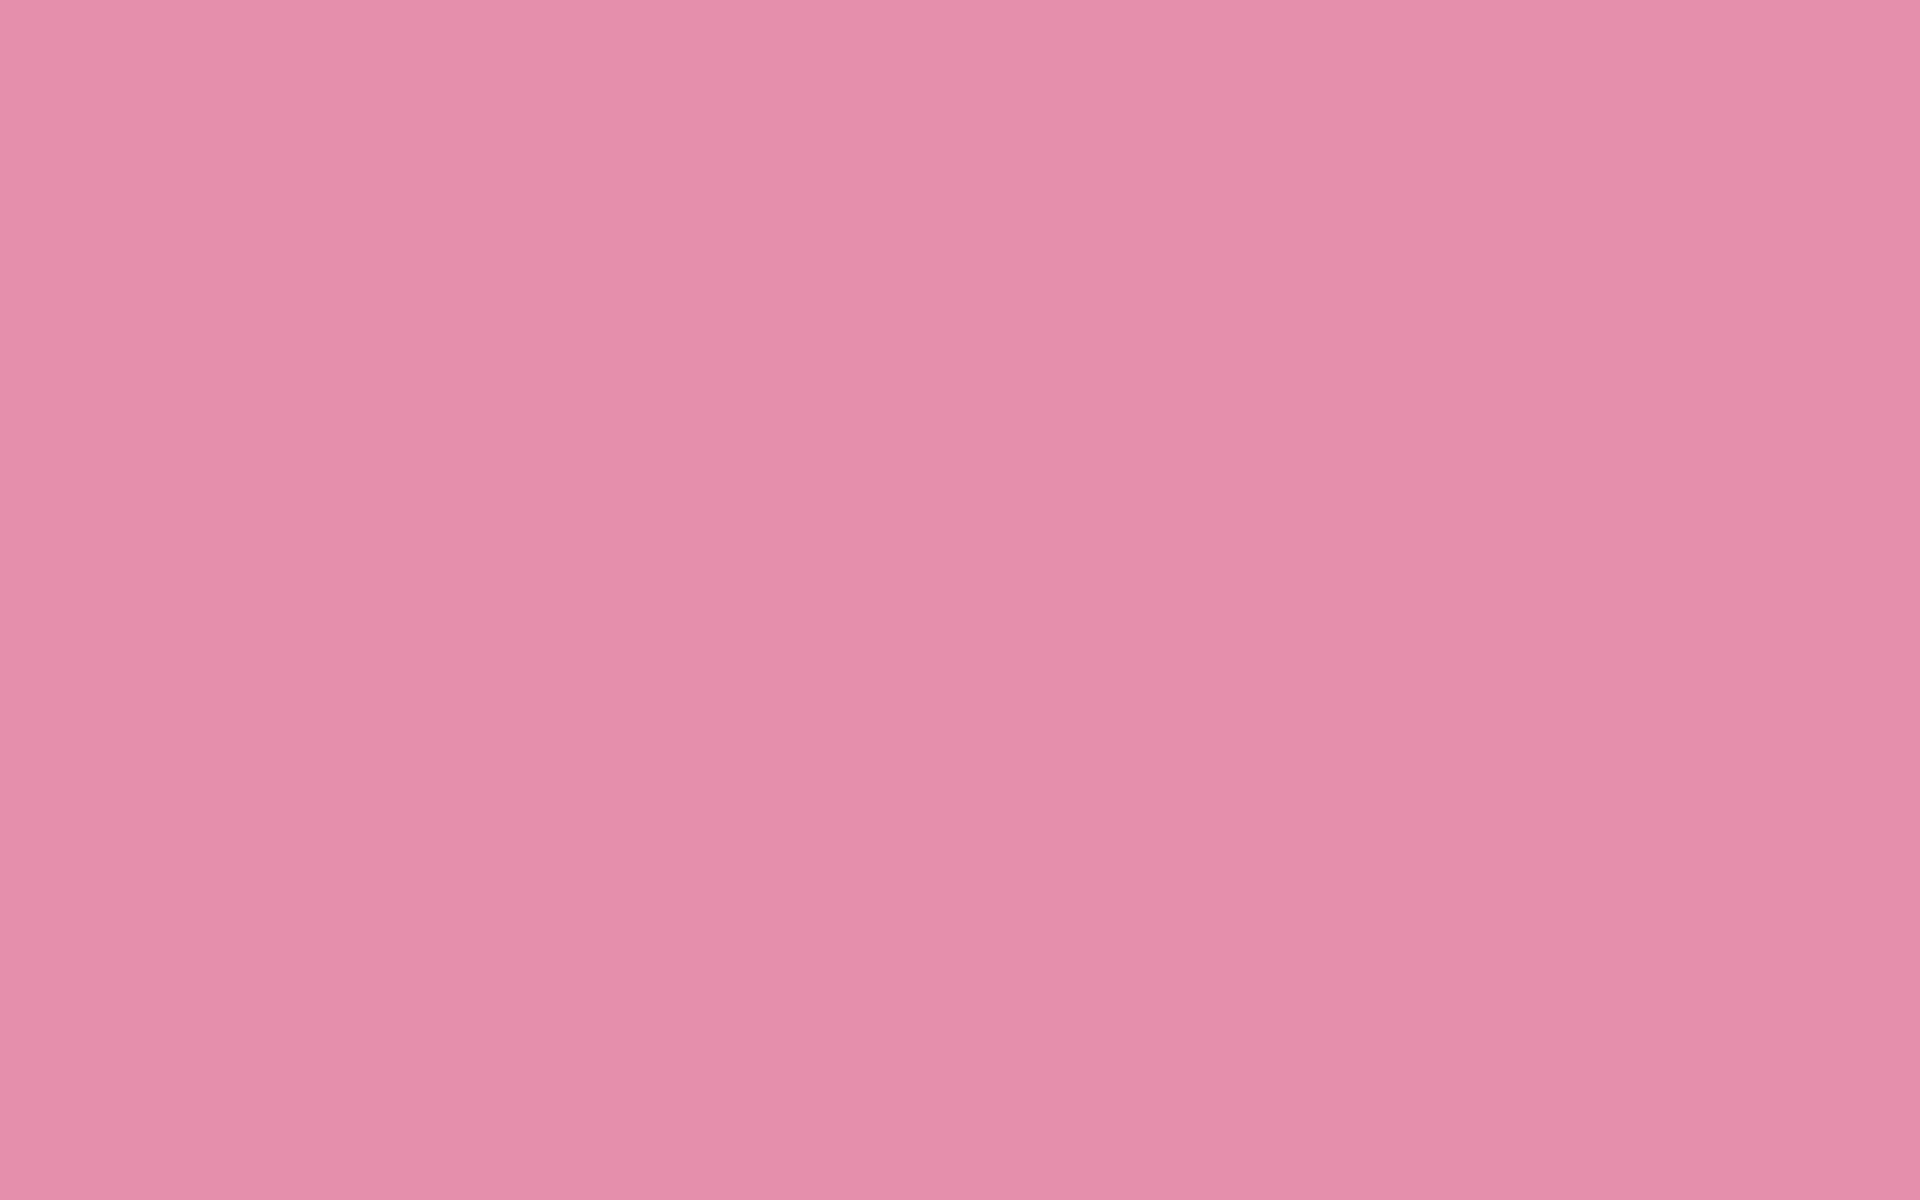 1920x1200 Charm Pink Solid Color Background 1920x1200